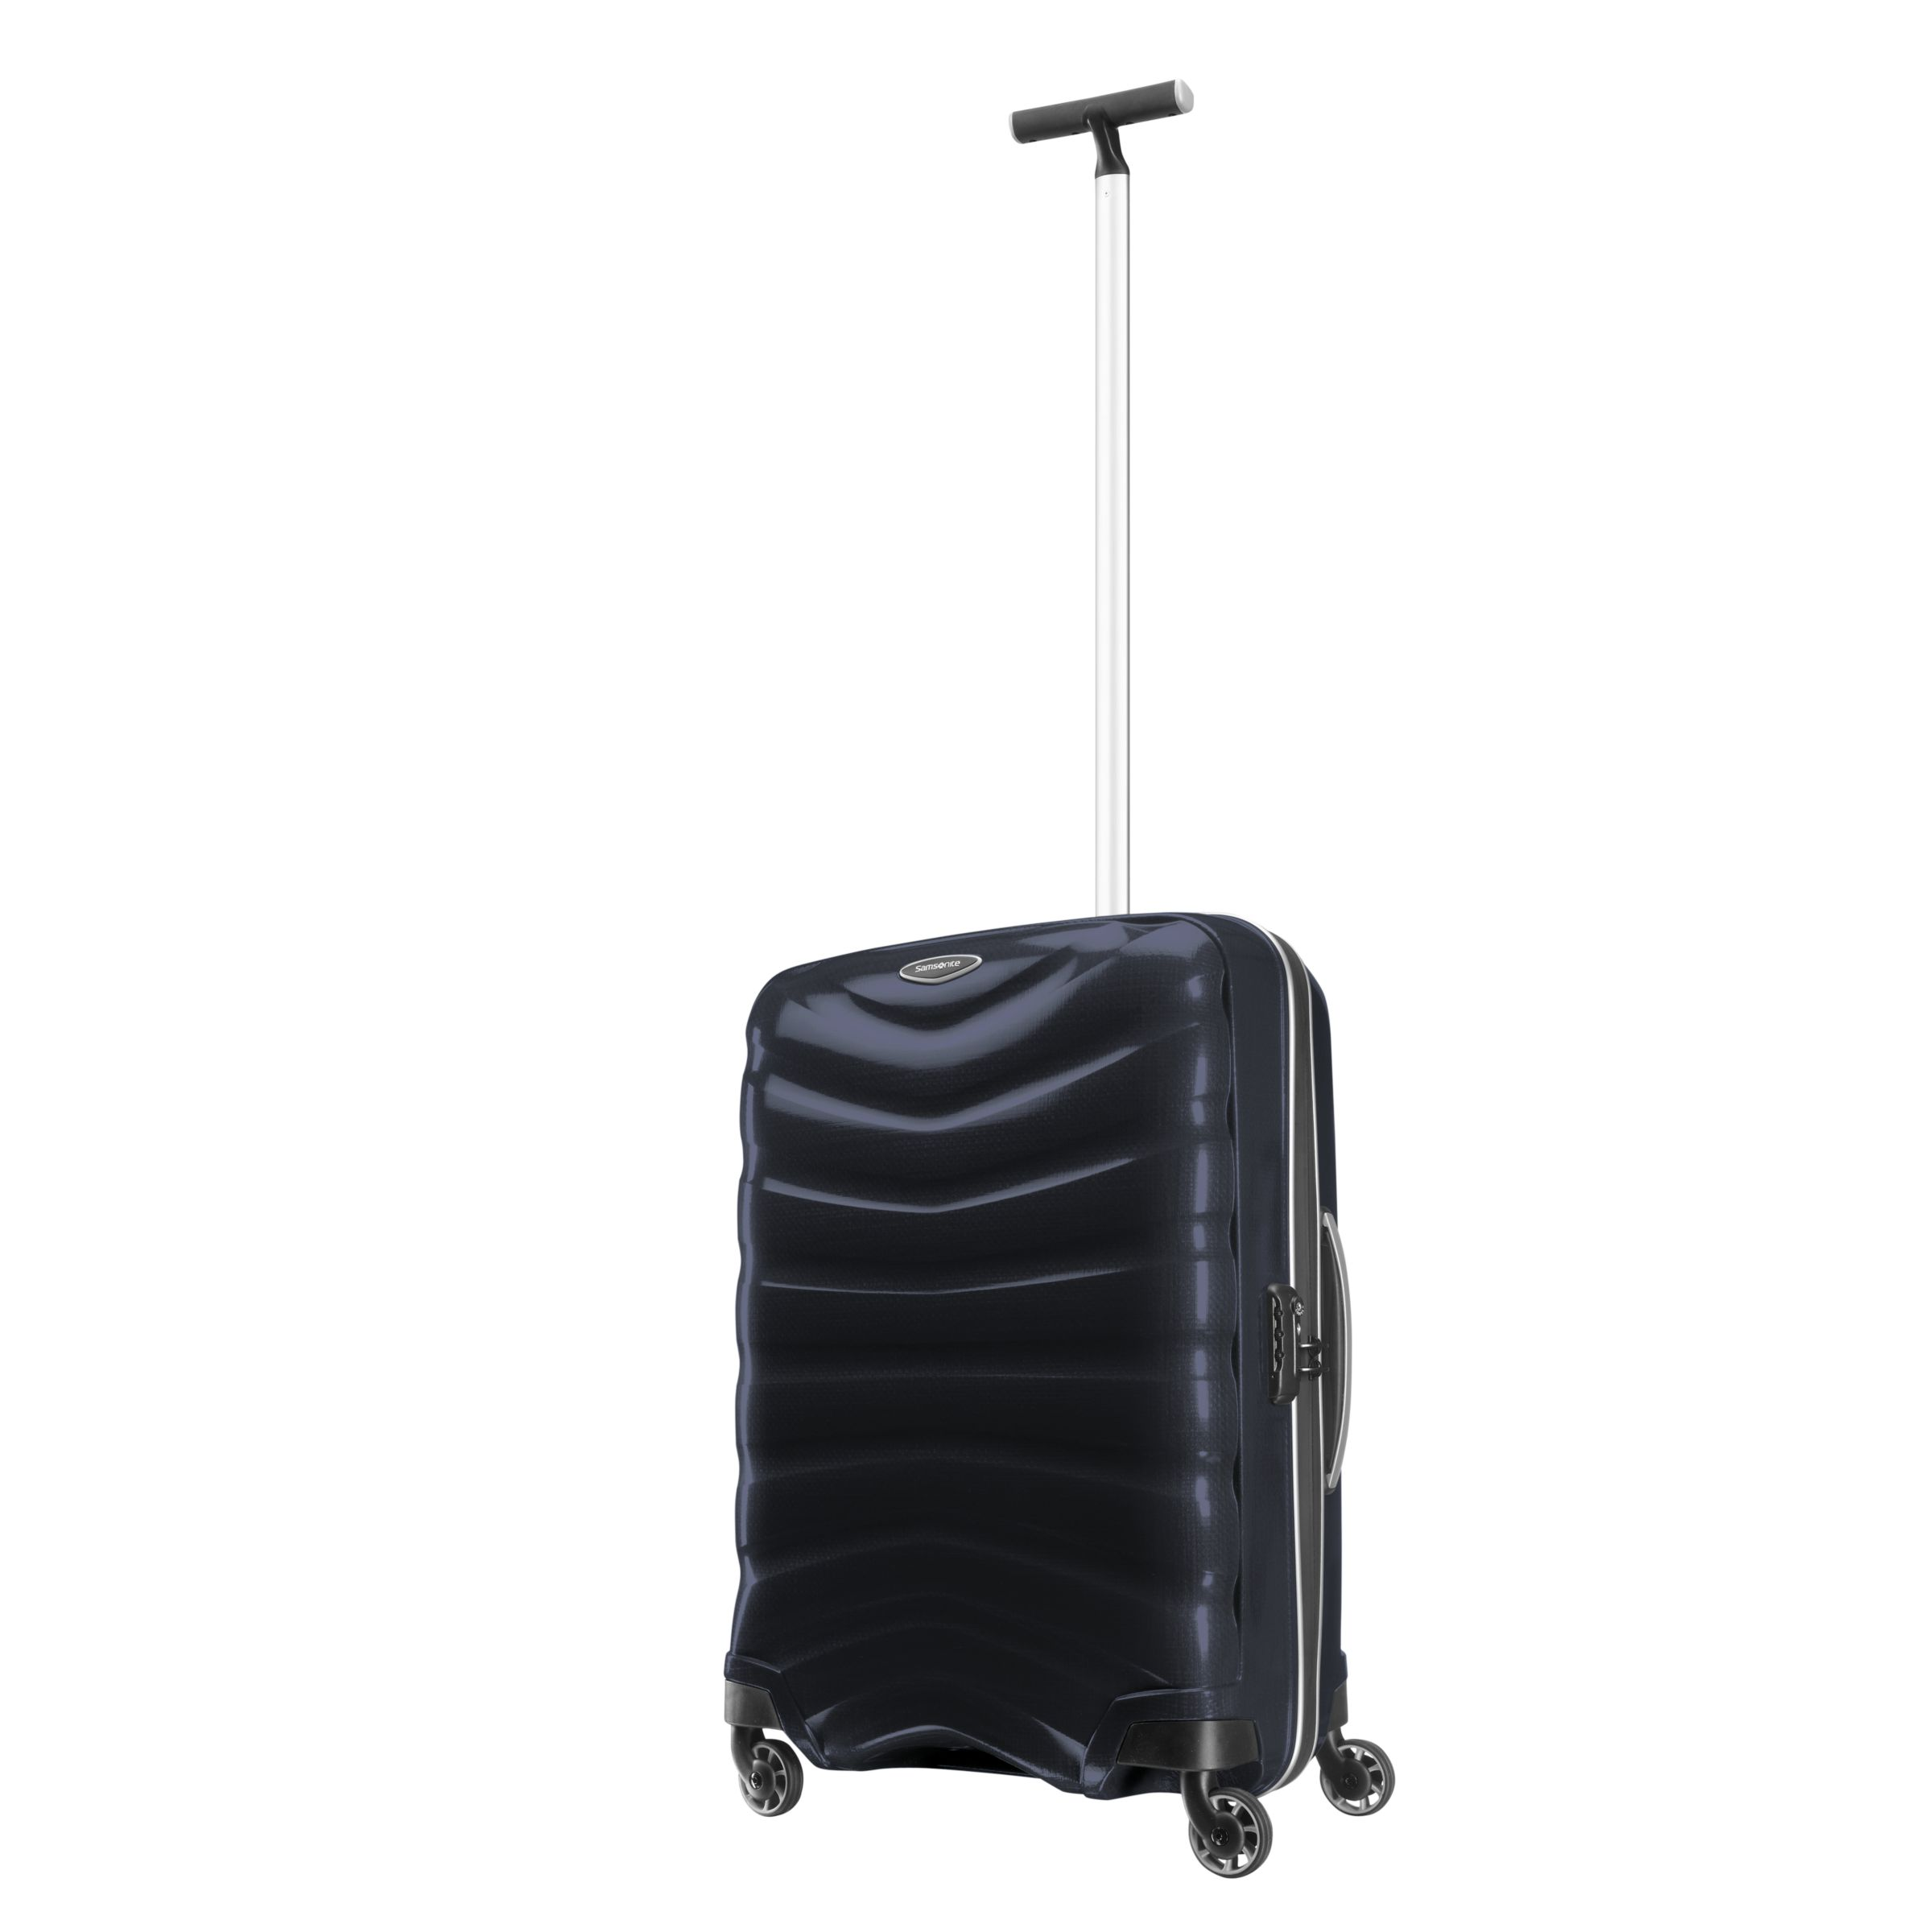 Samsonite Firelite 4-Wheel Spinner Suitcase, Charcoal, Cabin